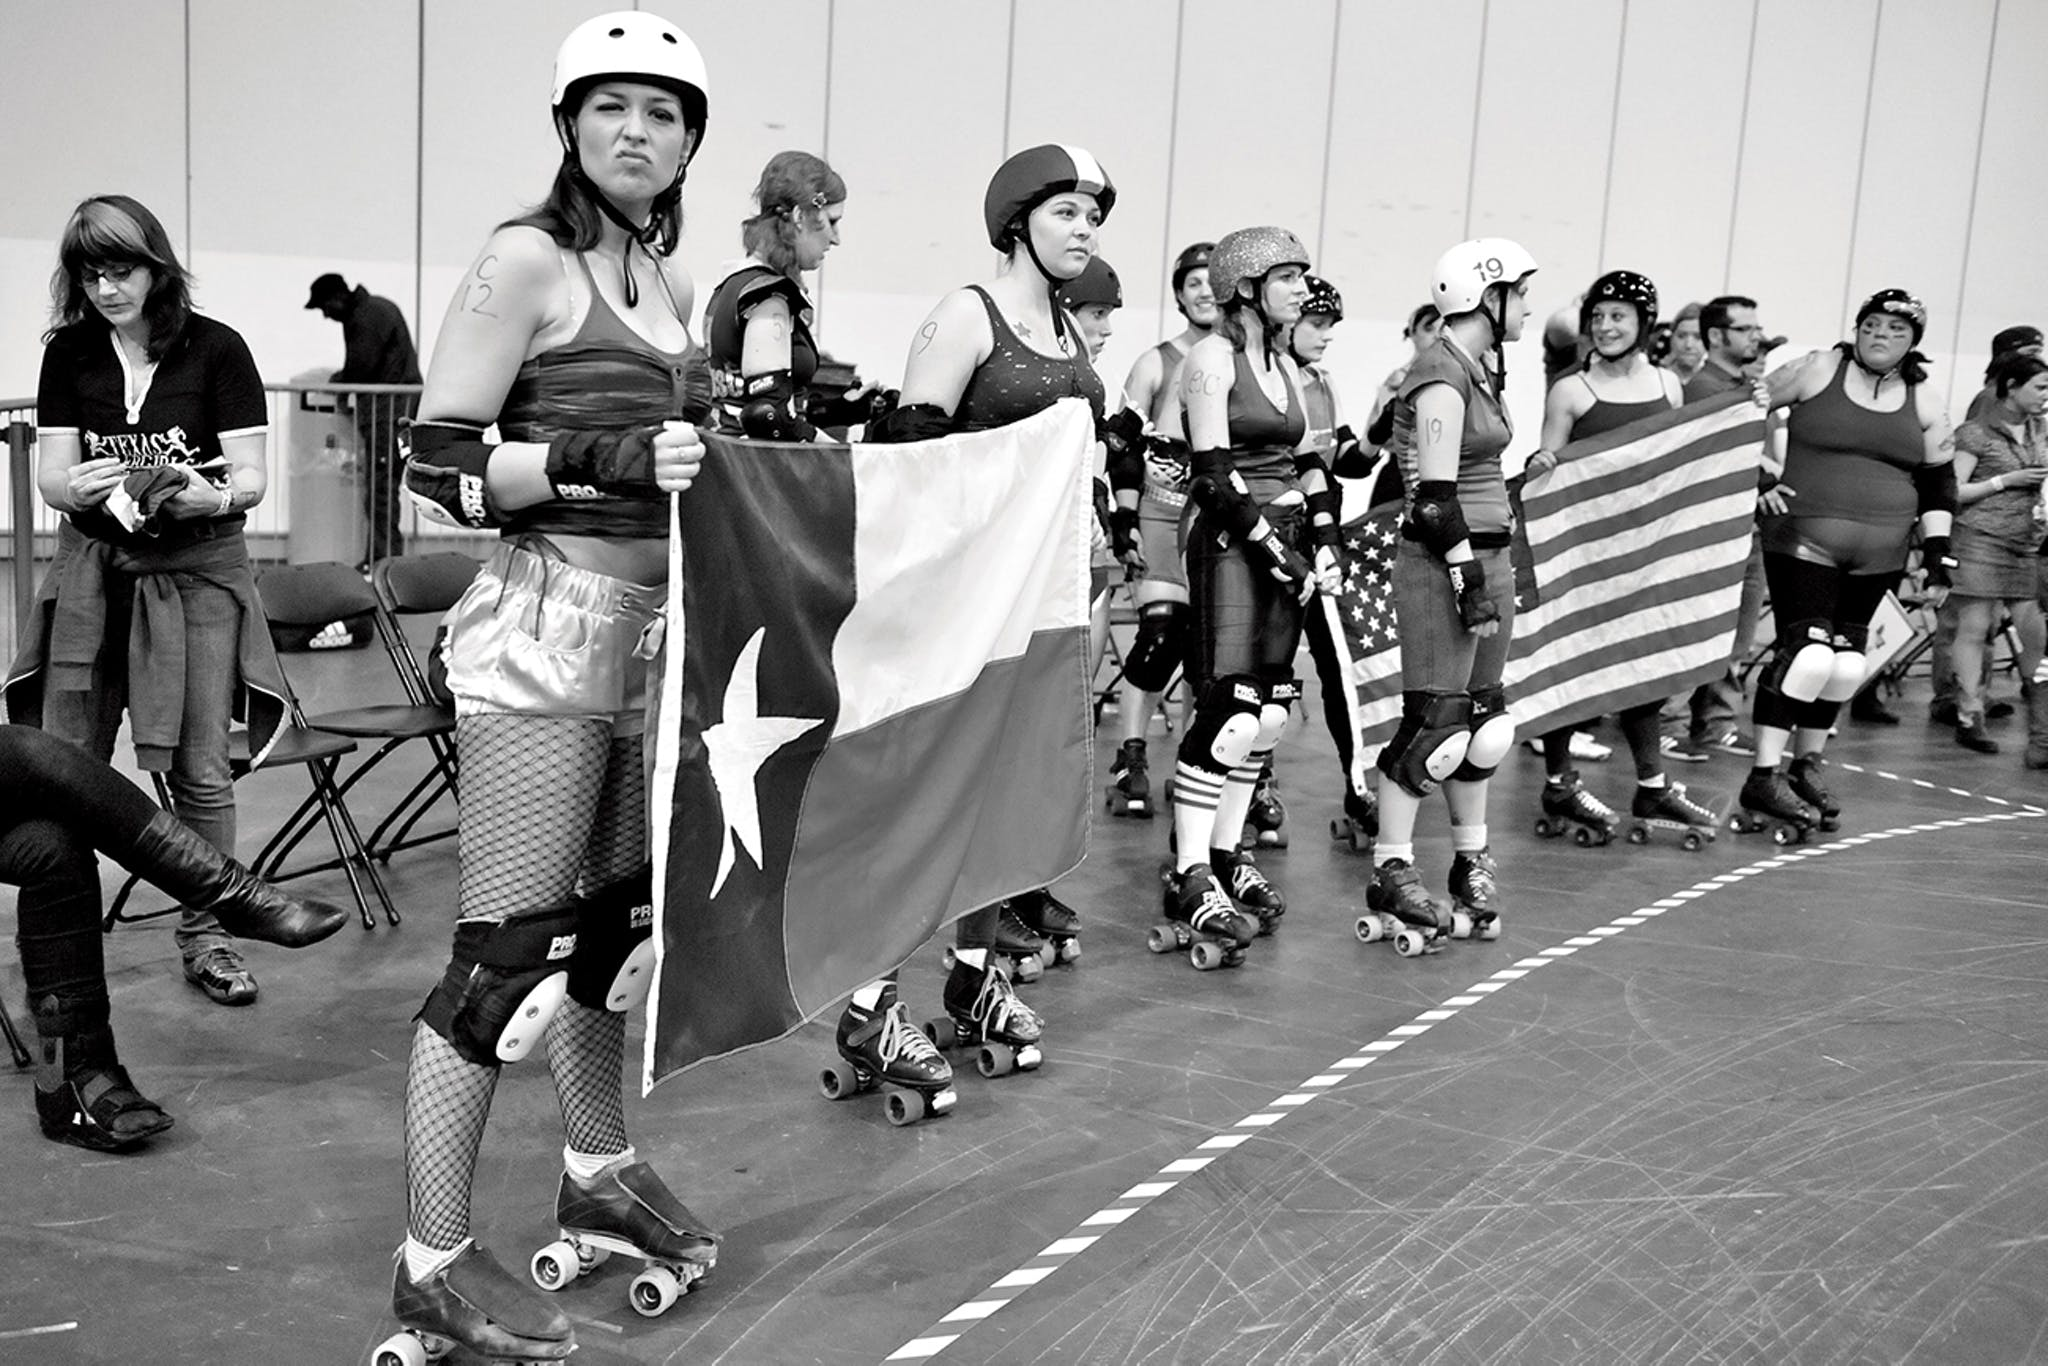 Members of the Texas Rollergirls hold Texas and American flags at a tournament in London